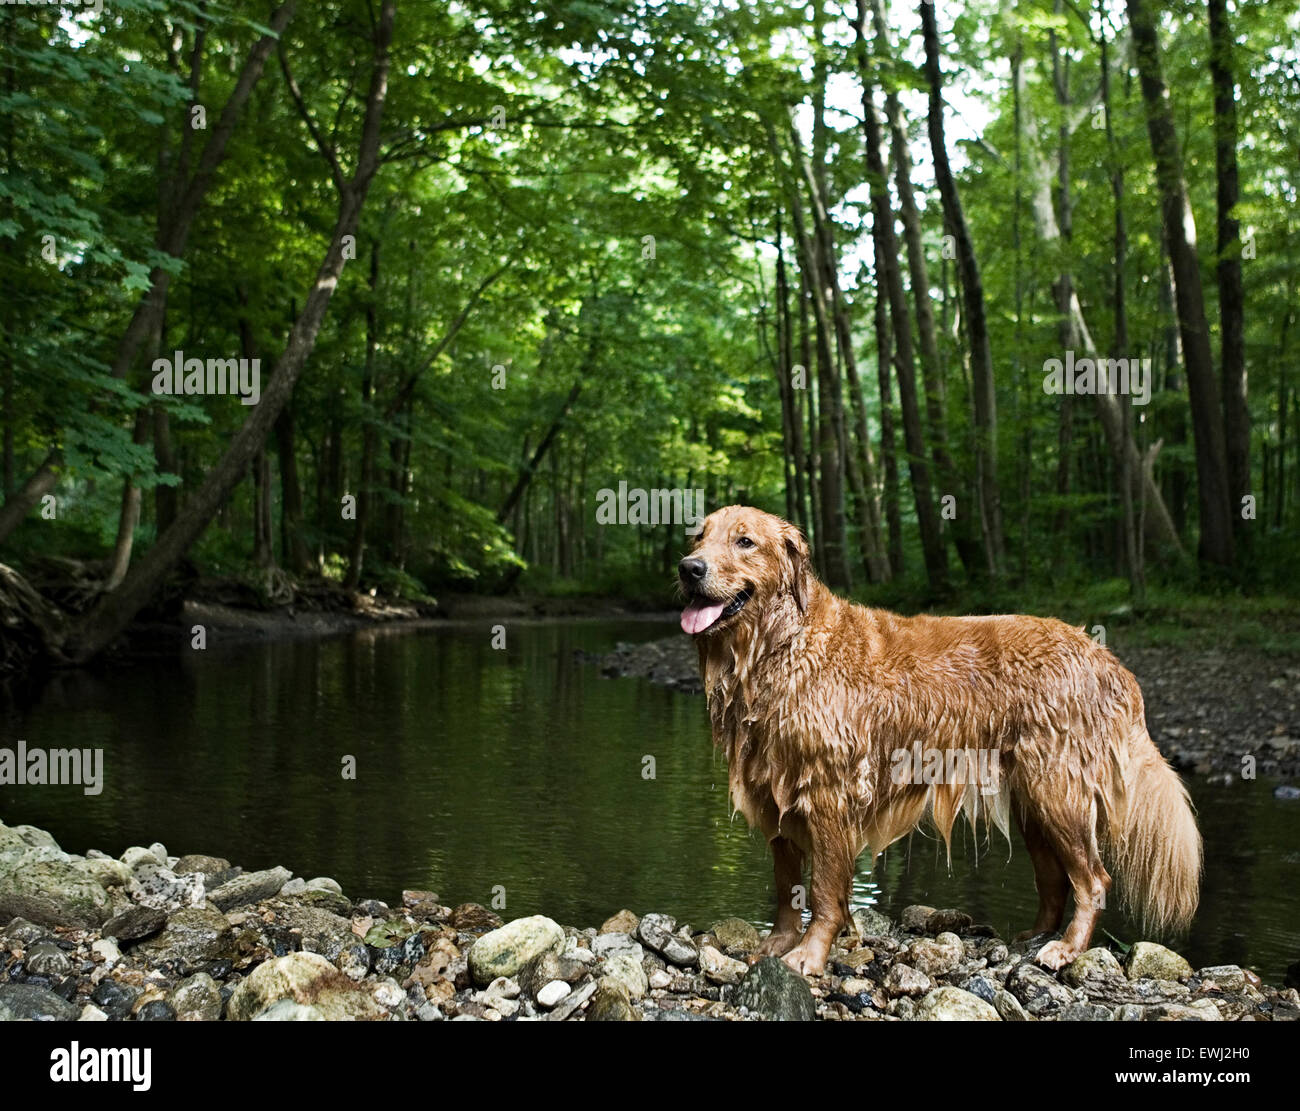 Soaking wet Golden Retriever dog standing on rocks at the shore of a stream in the woods - Stock Image